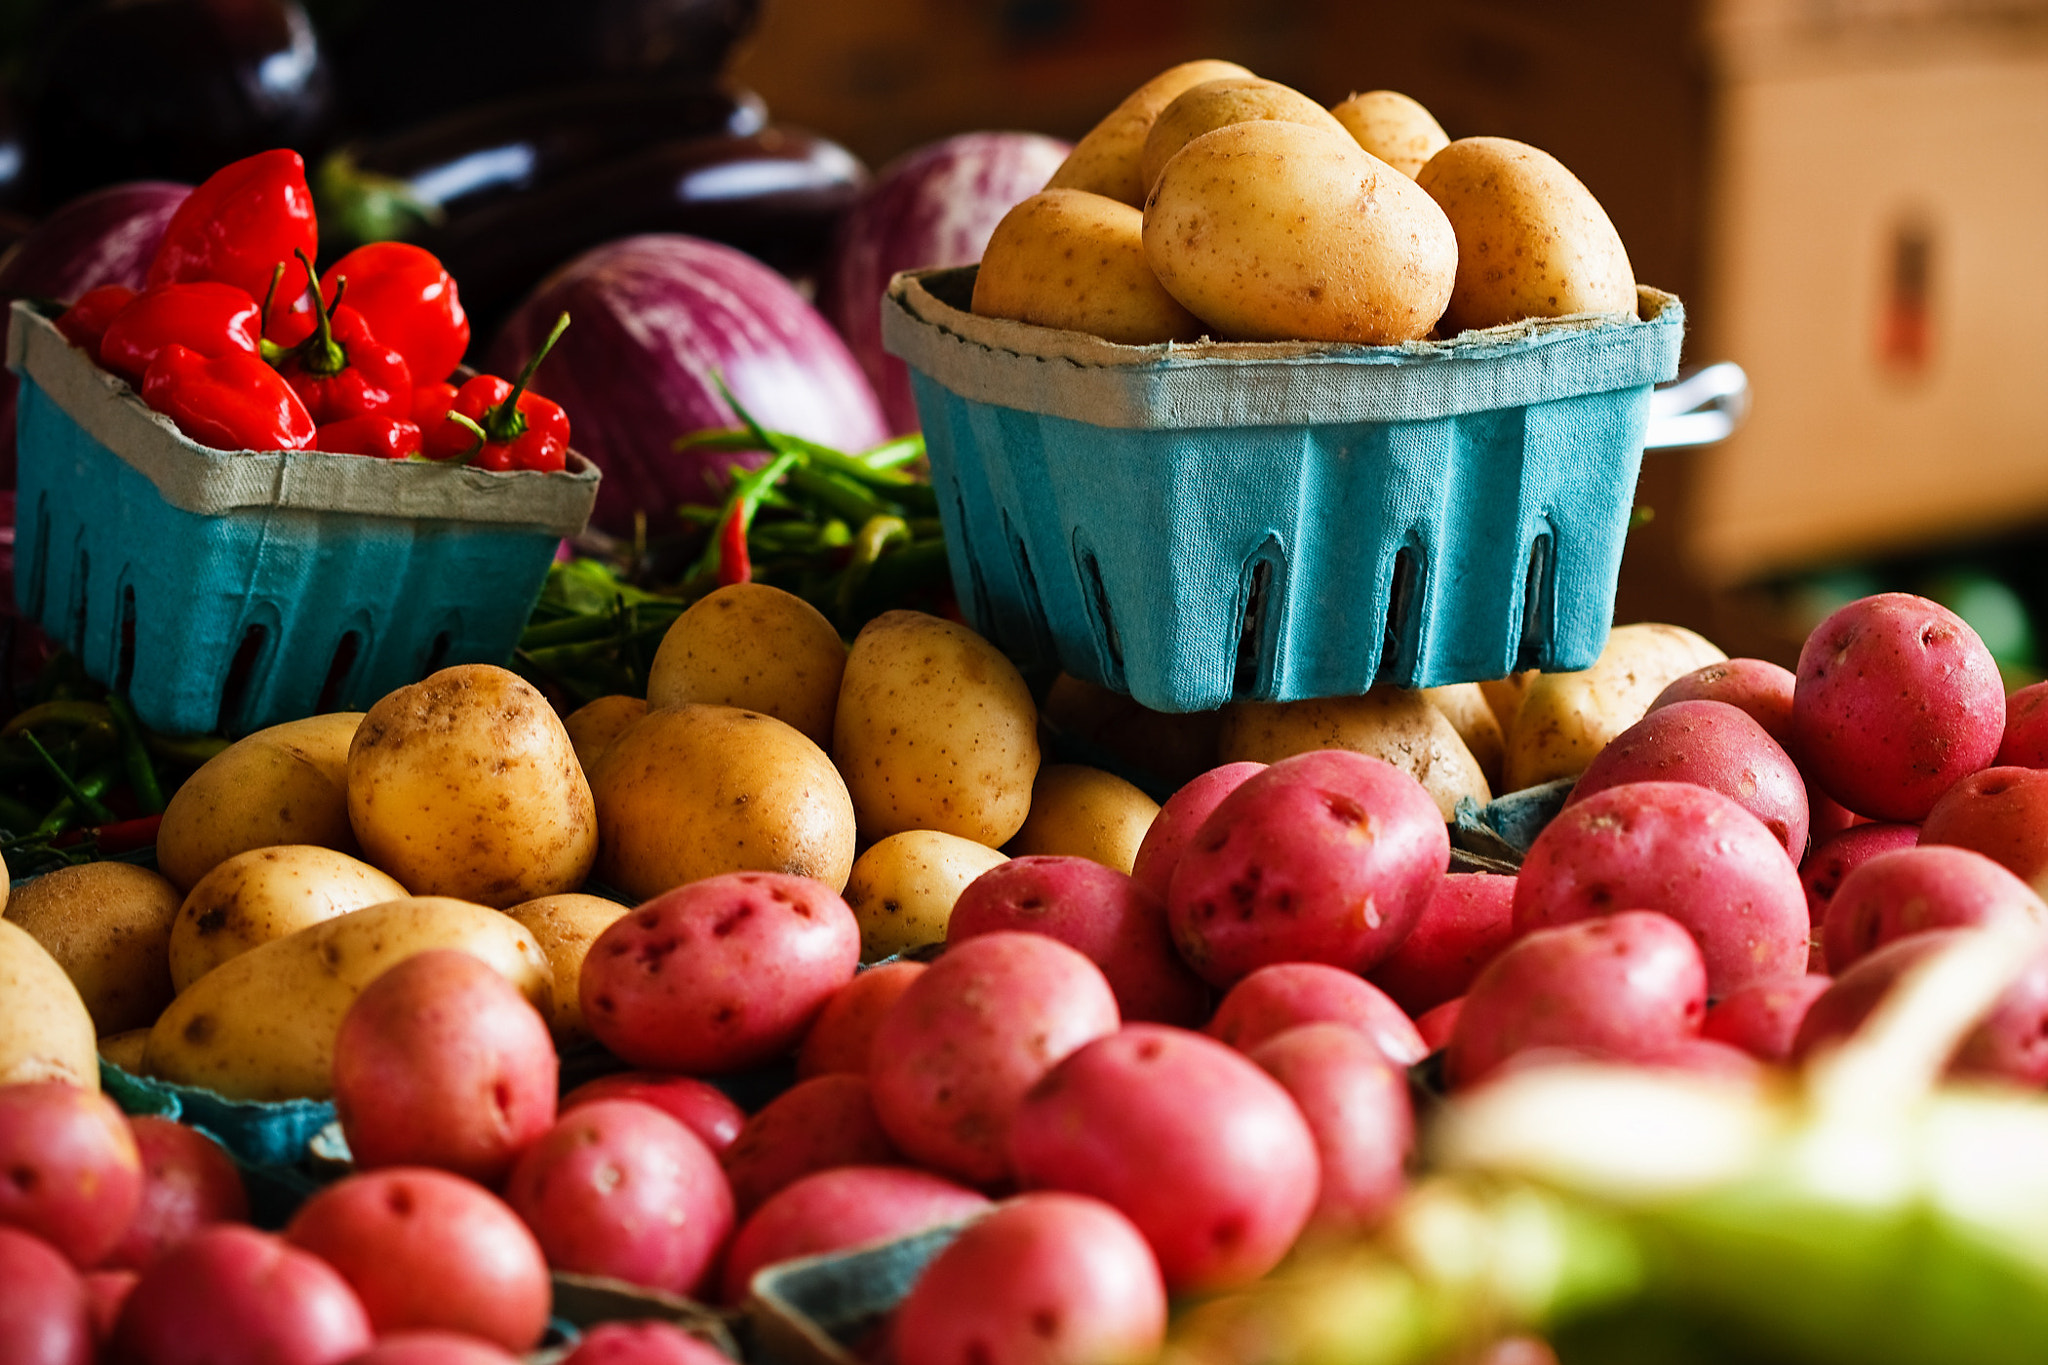 Photograph Colorful Taters by Michael Thompson on 500px